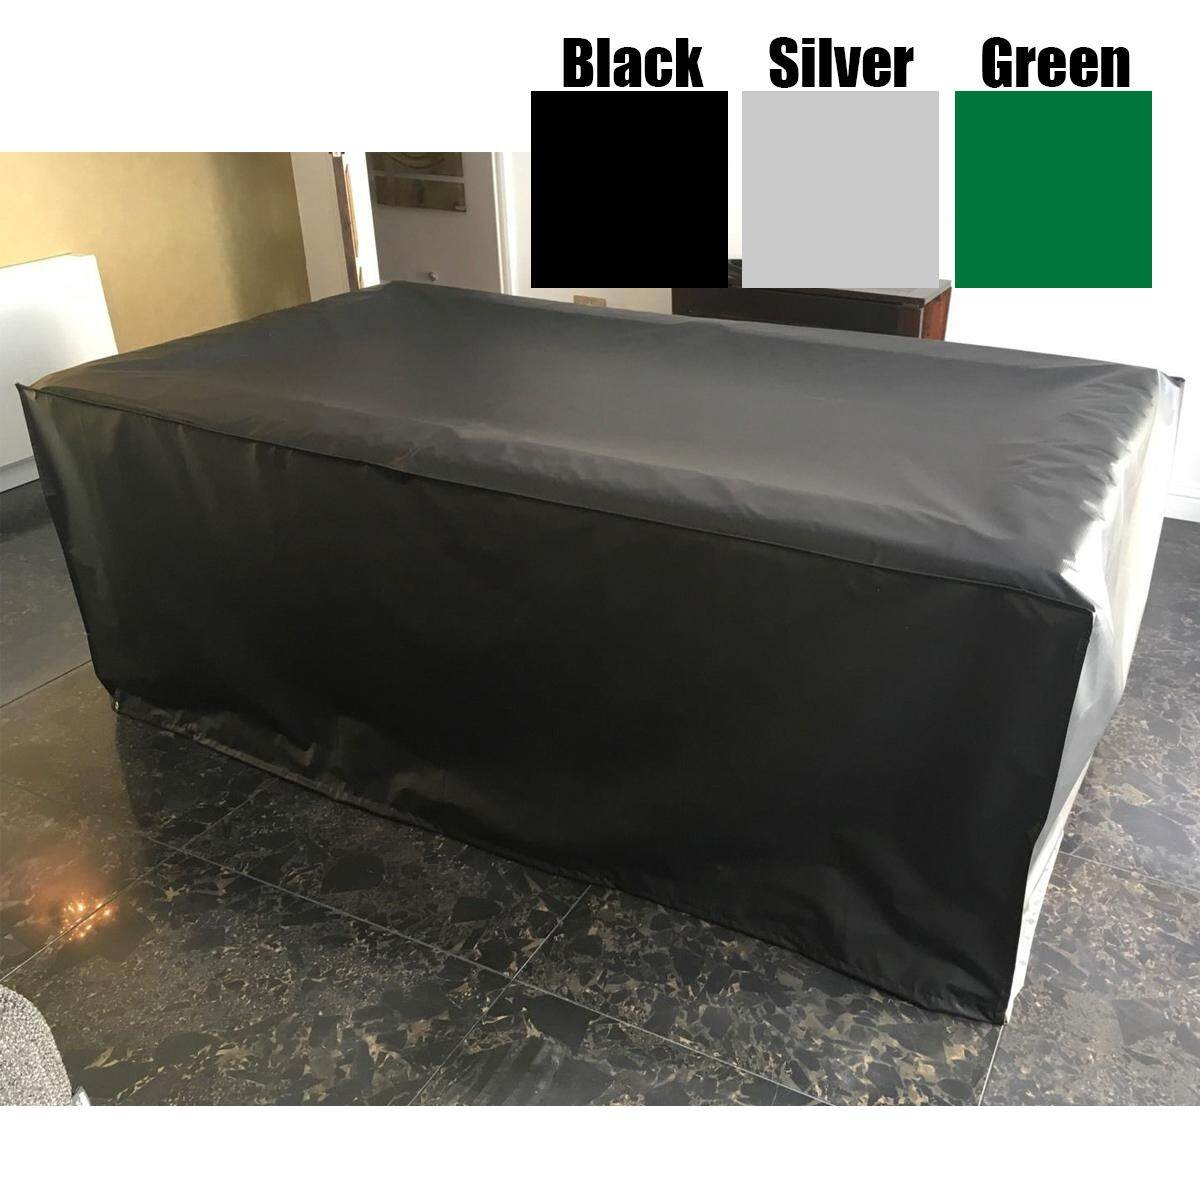 Snooker/ Pool Table Cover, 6ft Full Drop,Weather Proof,Heavy Duty